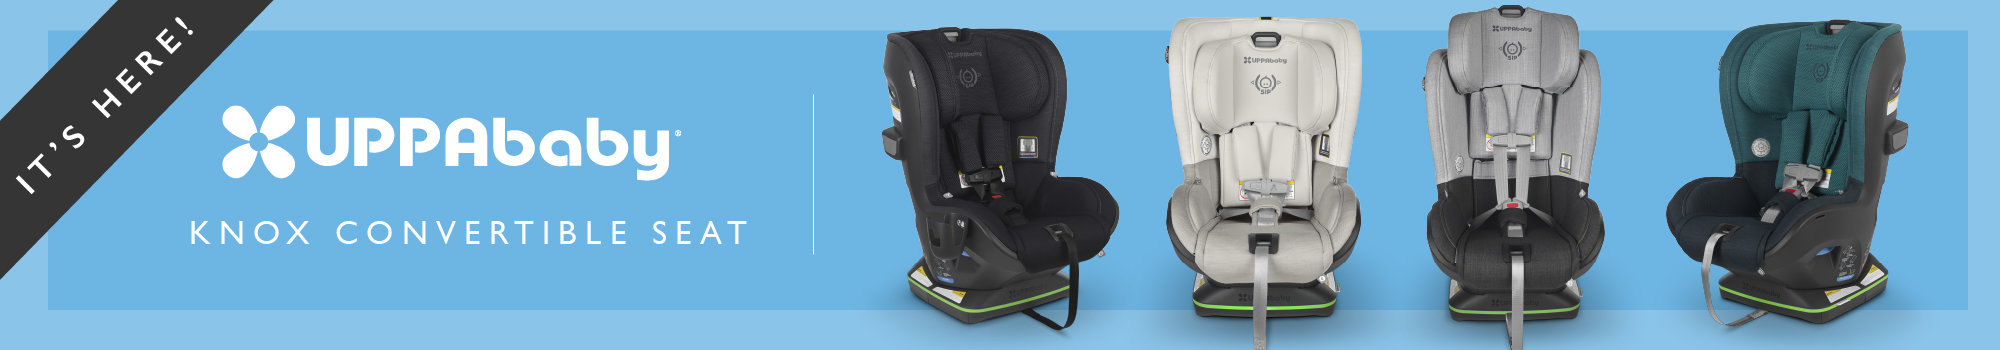 UPPAbaby KNOX Convertible Car Seat Available in Canada